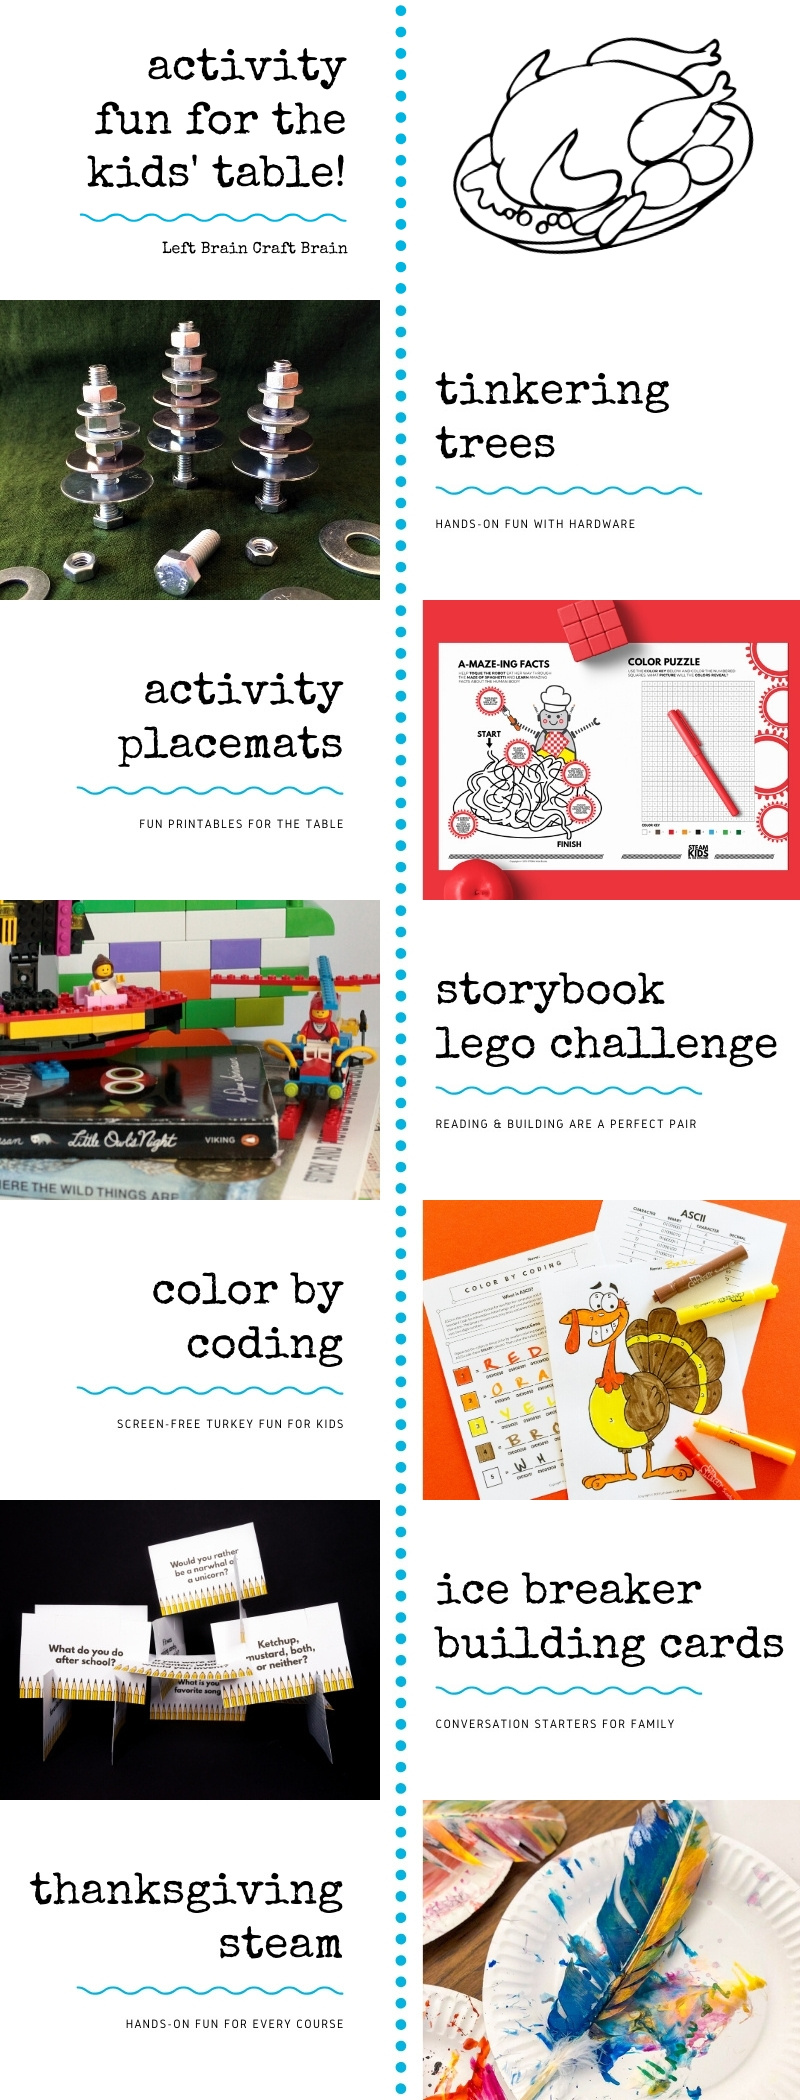 Looking for some fun stuff to do at the kids' table for the holidays? Add some STEAM (science, technology, engineering, art, and math) and make it more interesting! These easy hands-on activities and fun printables will add something unique for the kids this year.